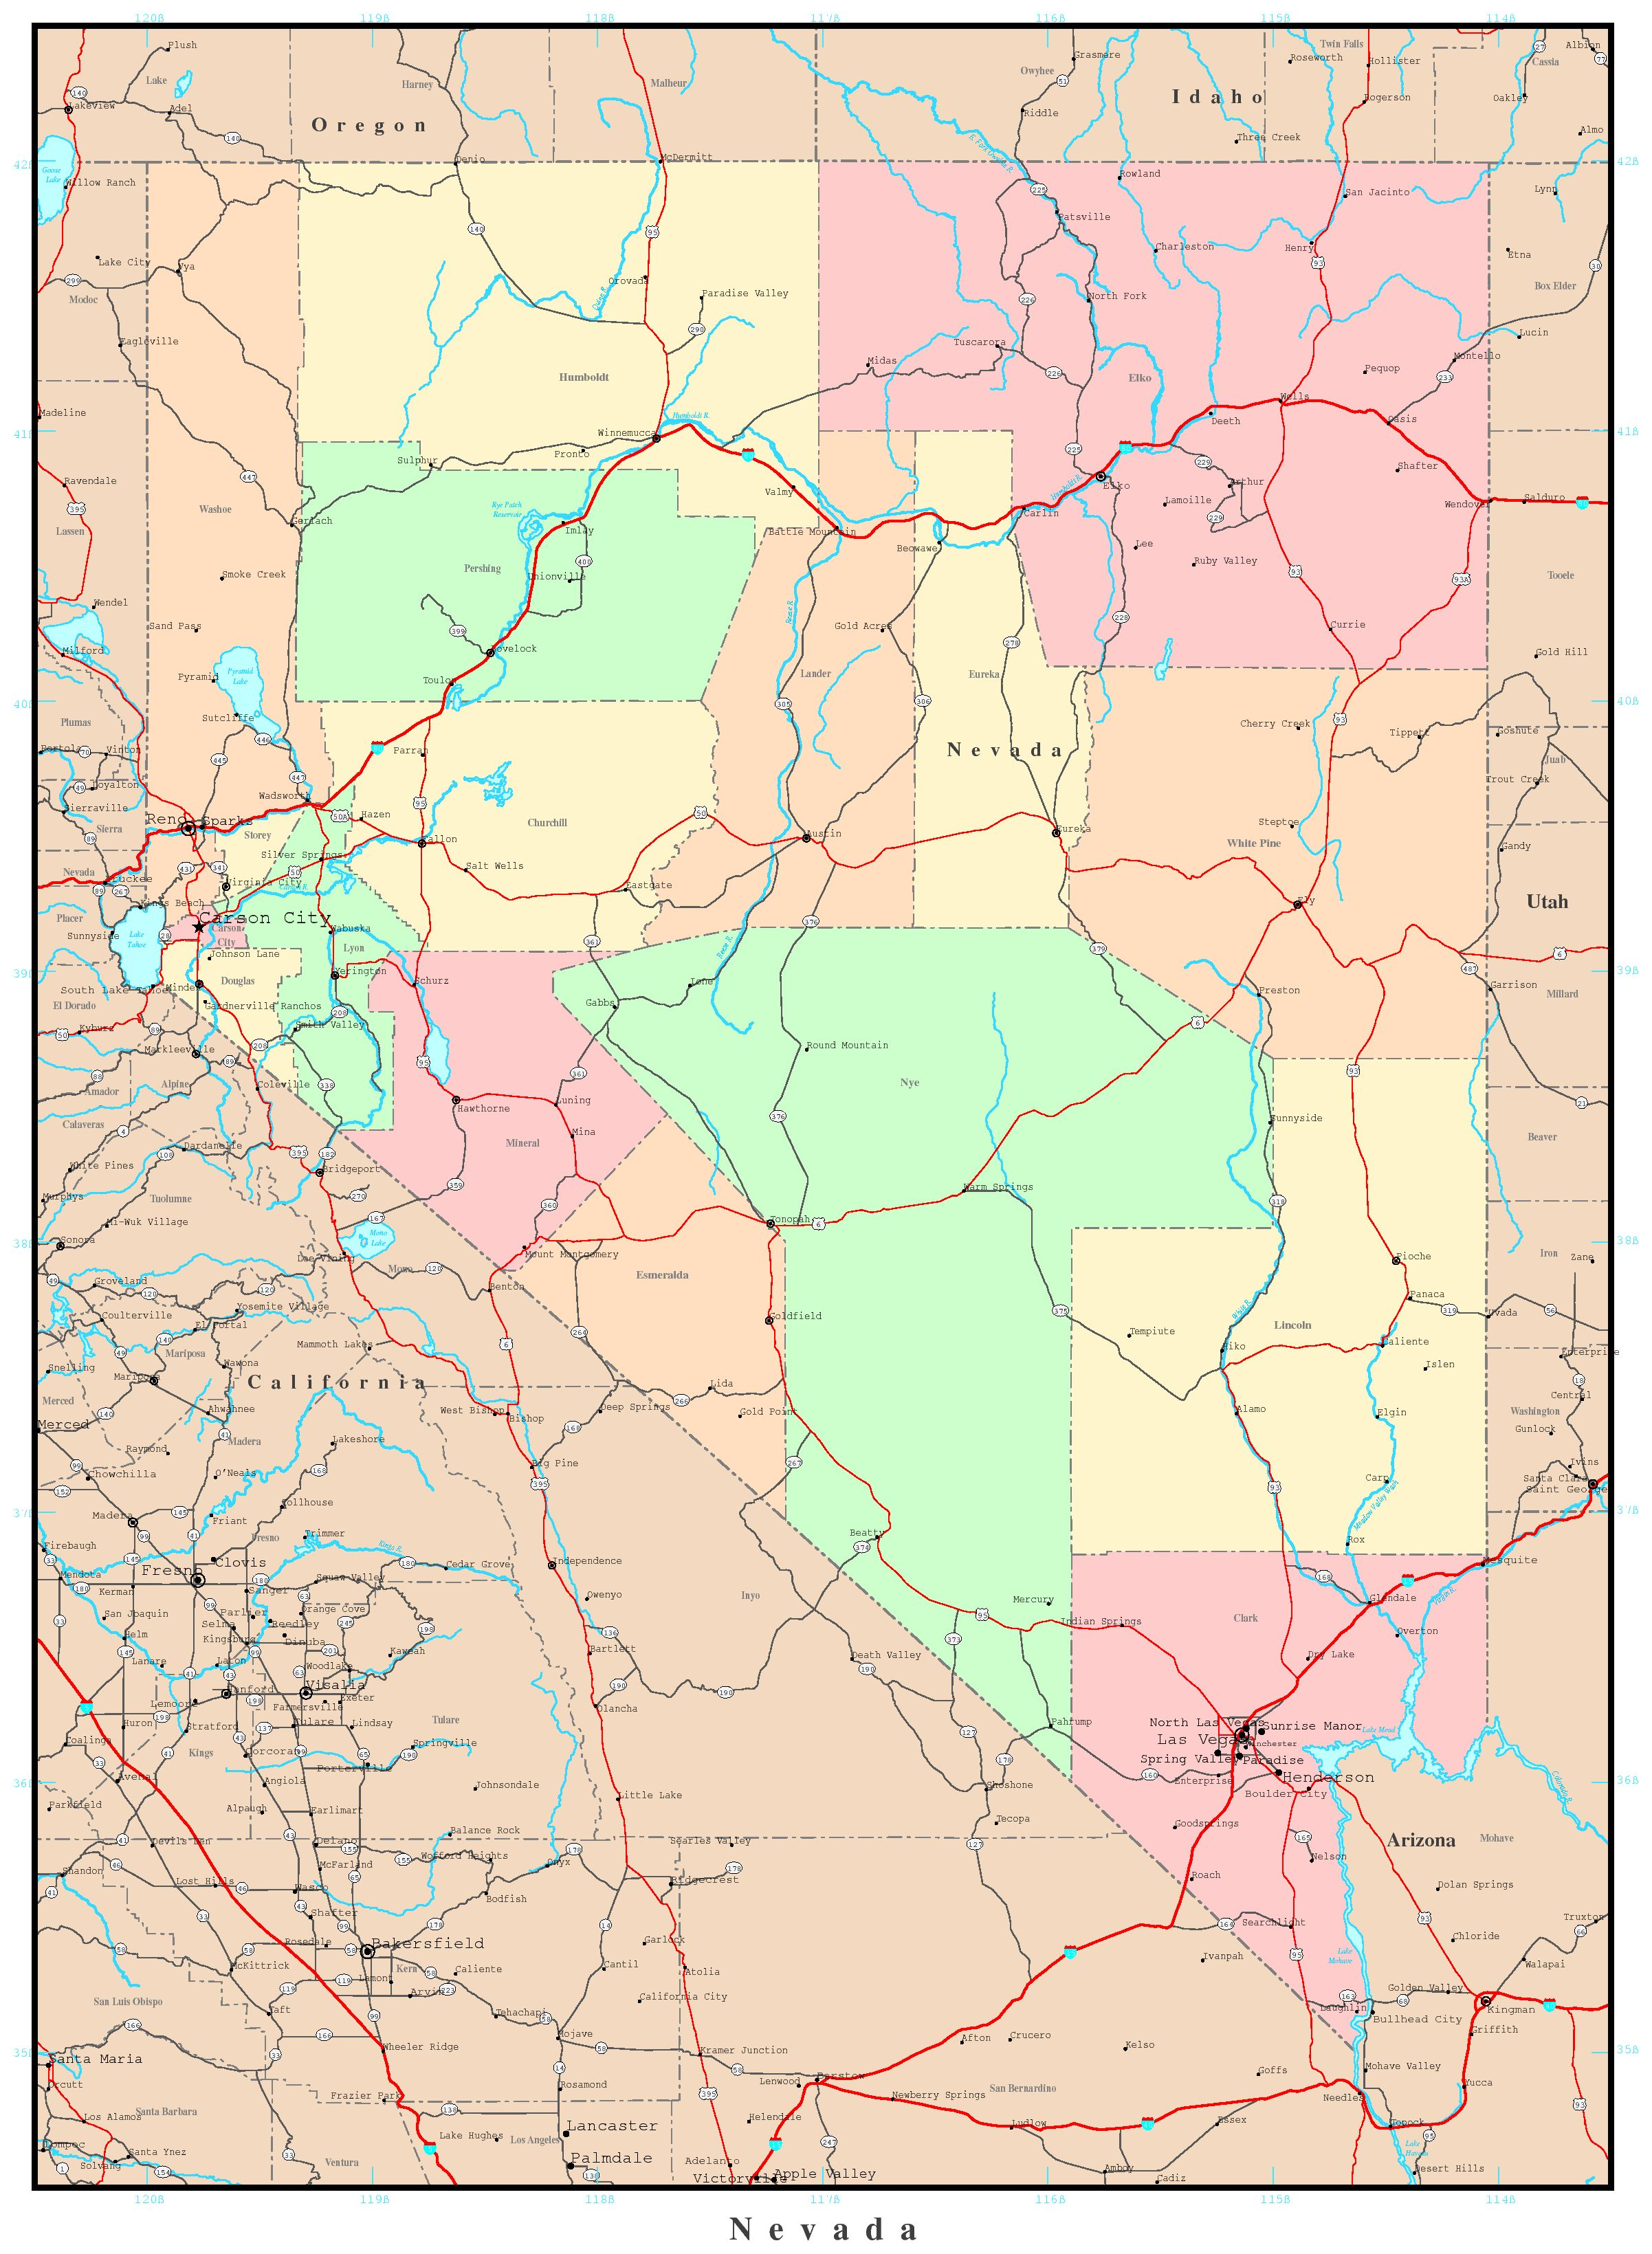 Nevada Political Map